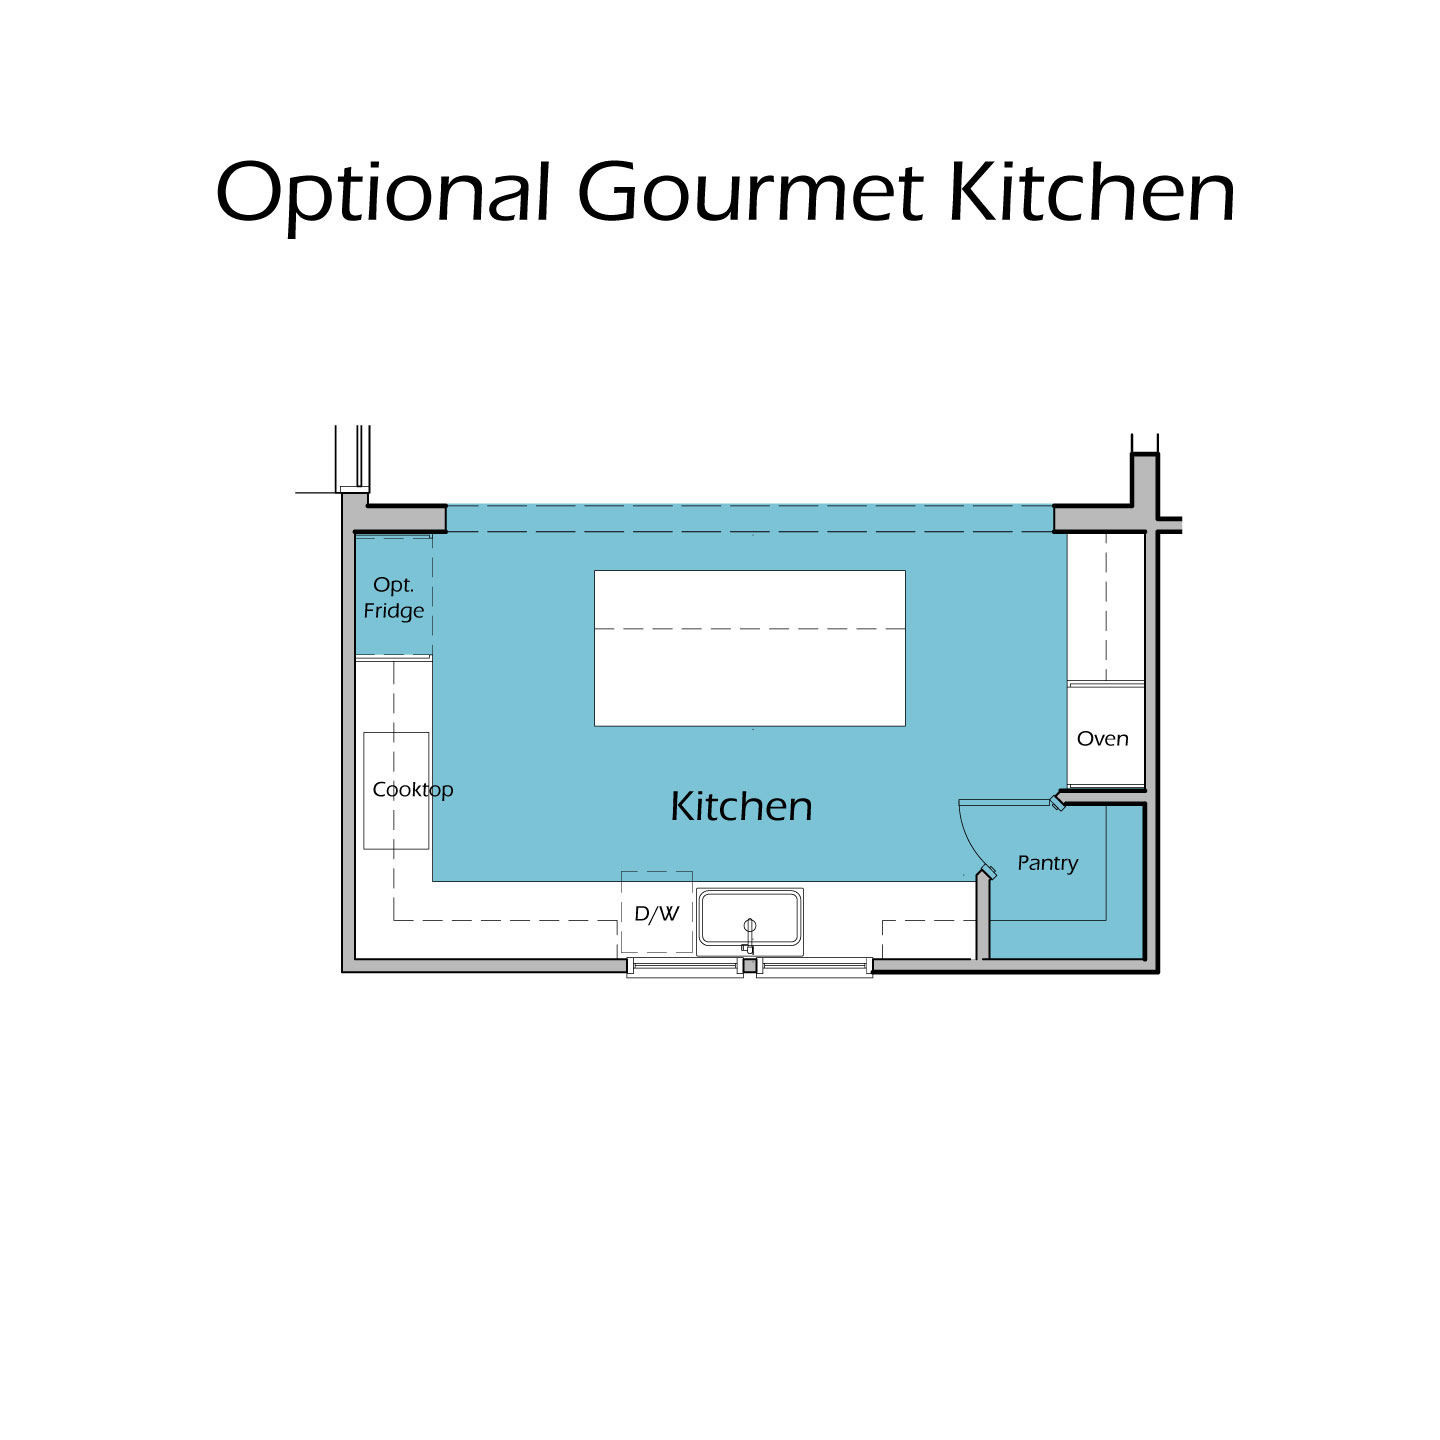 Heartland Plan TC1 Gourmet Kitchen Option